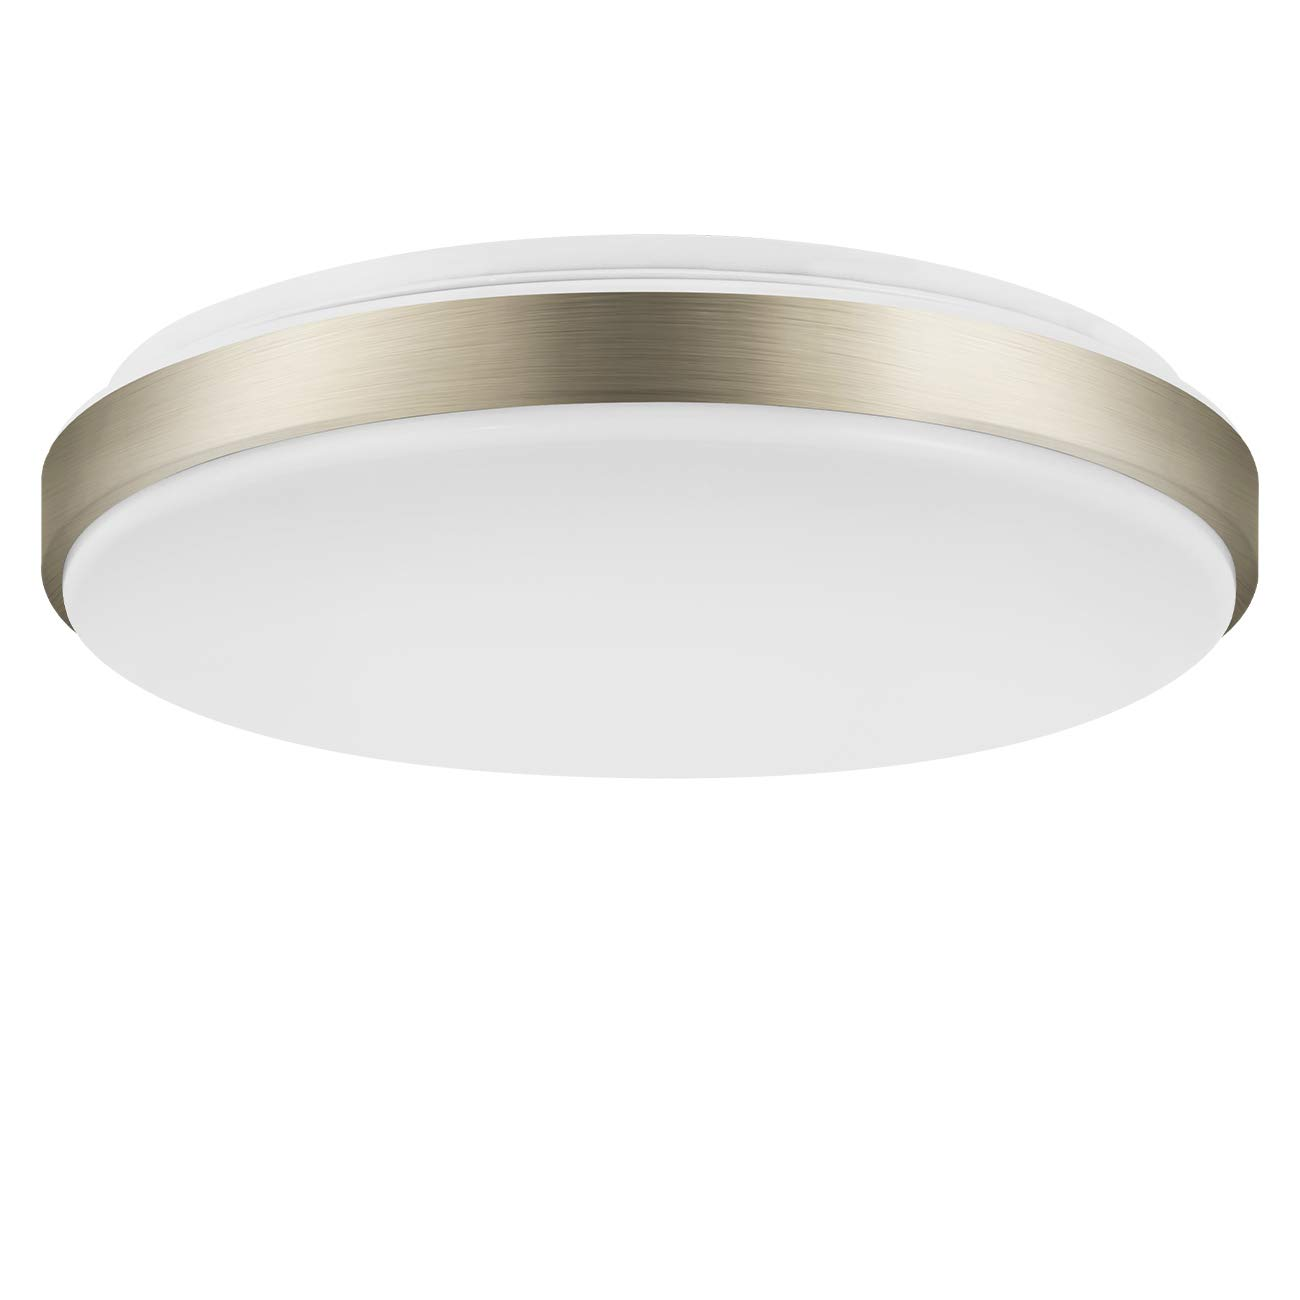 15 inch Equivalent 160W Flush Mount LED Ceiling Light,LVWIT 22W Dimmable 5000K Daylight 500 Lumens Round Lighting,Energy Star for Kitchen Dining Room